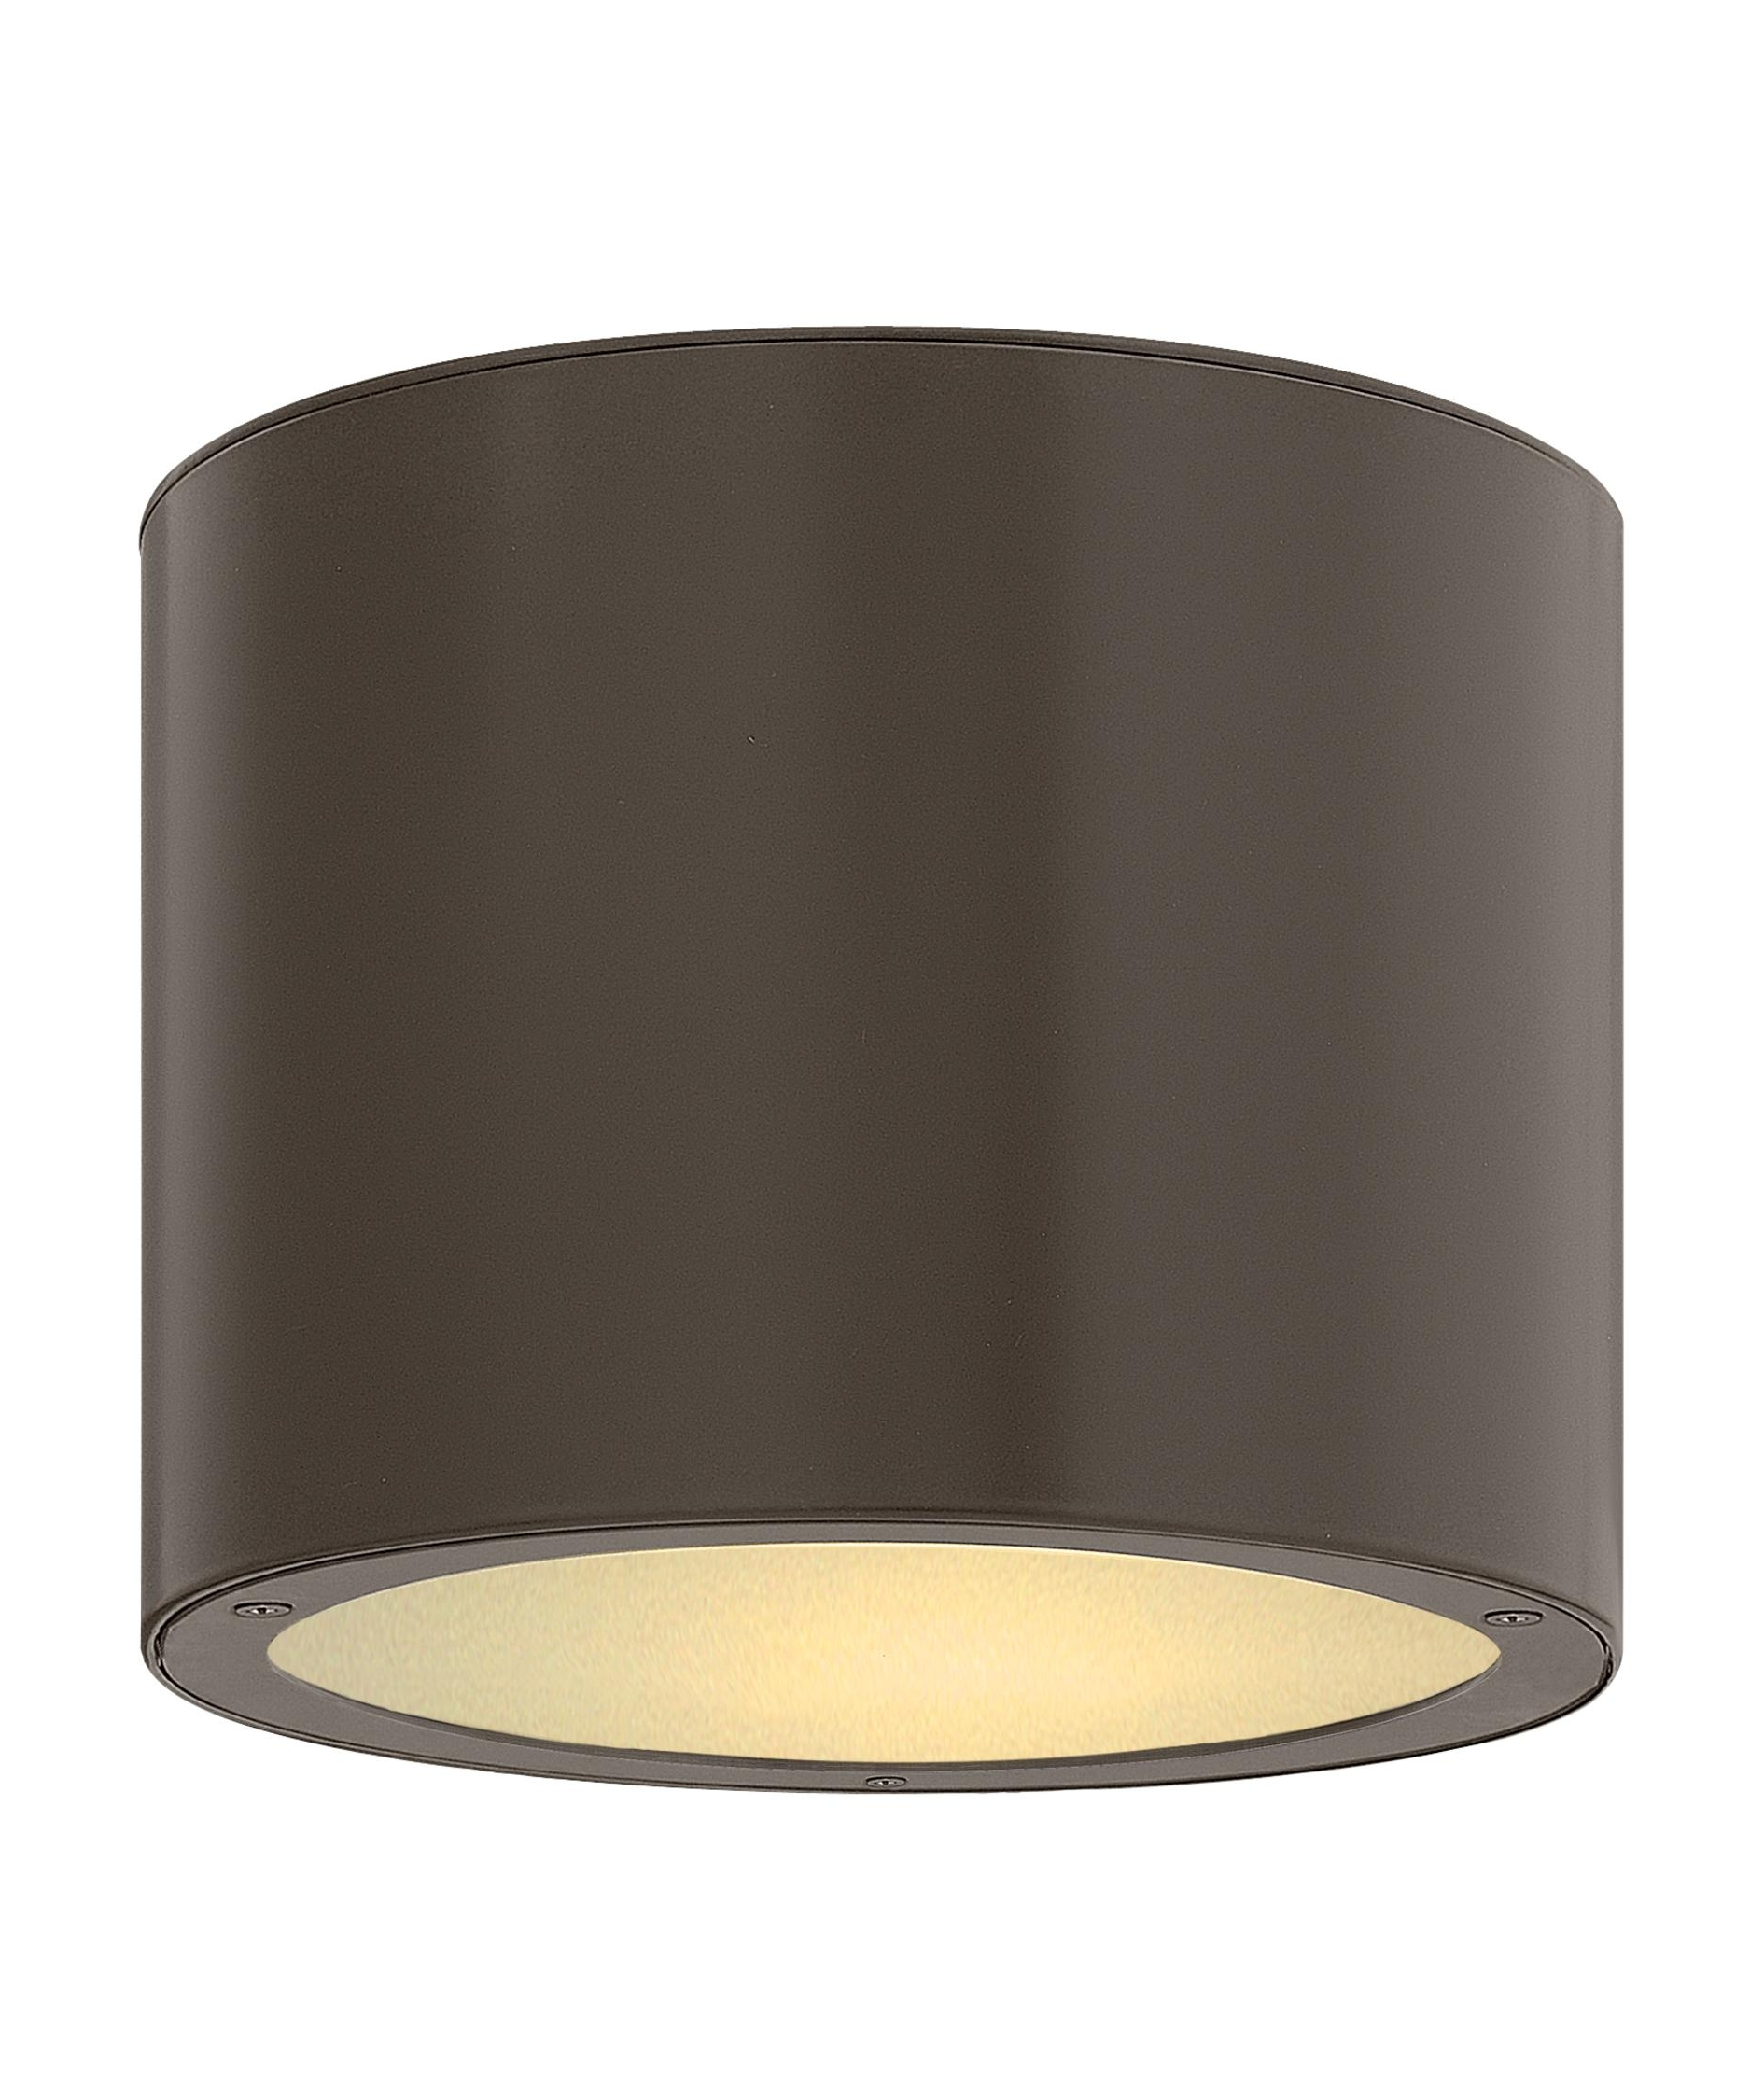 Hinkley Lighting 1663 Luna 8 Inch Wide 1 Light Outdoor Flush Mount For Famous Outdoor Ceiling Lights (View 5 of 20)